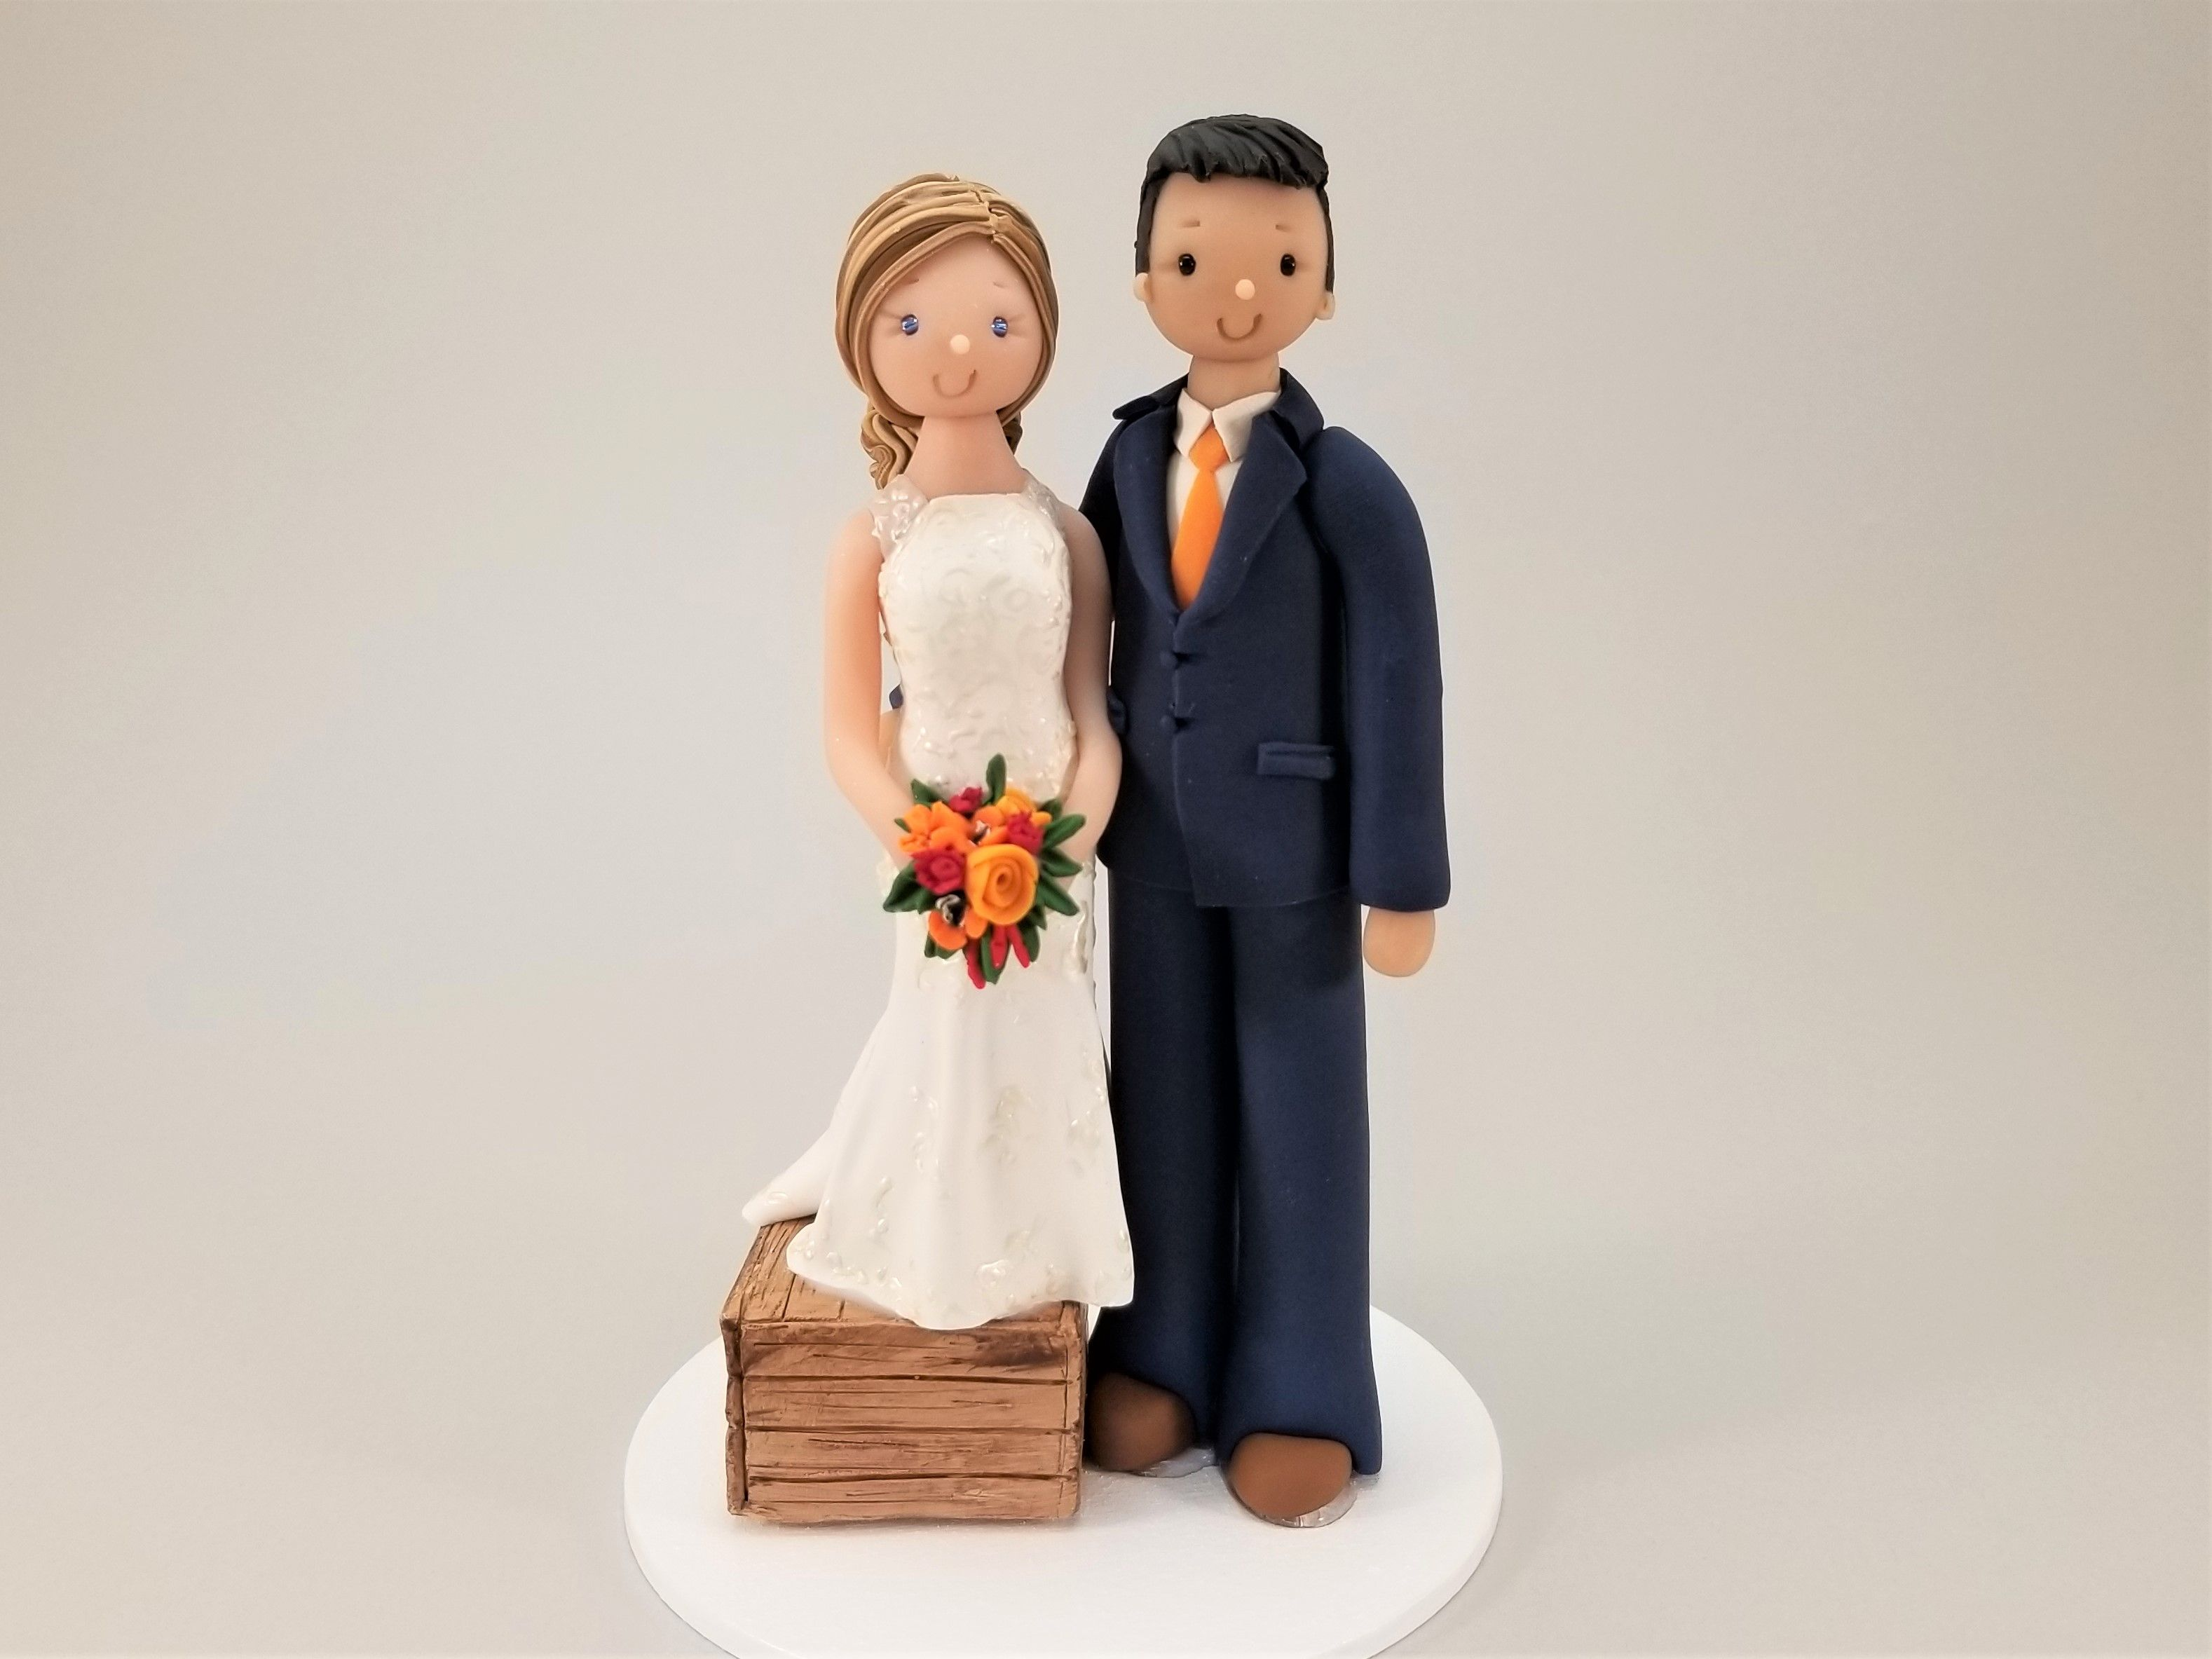 Bride /& Groom with Dogs Customized Wedding Cake Topper By MUDCARDS